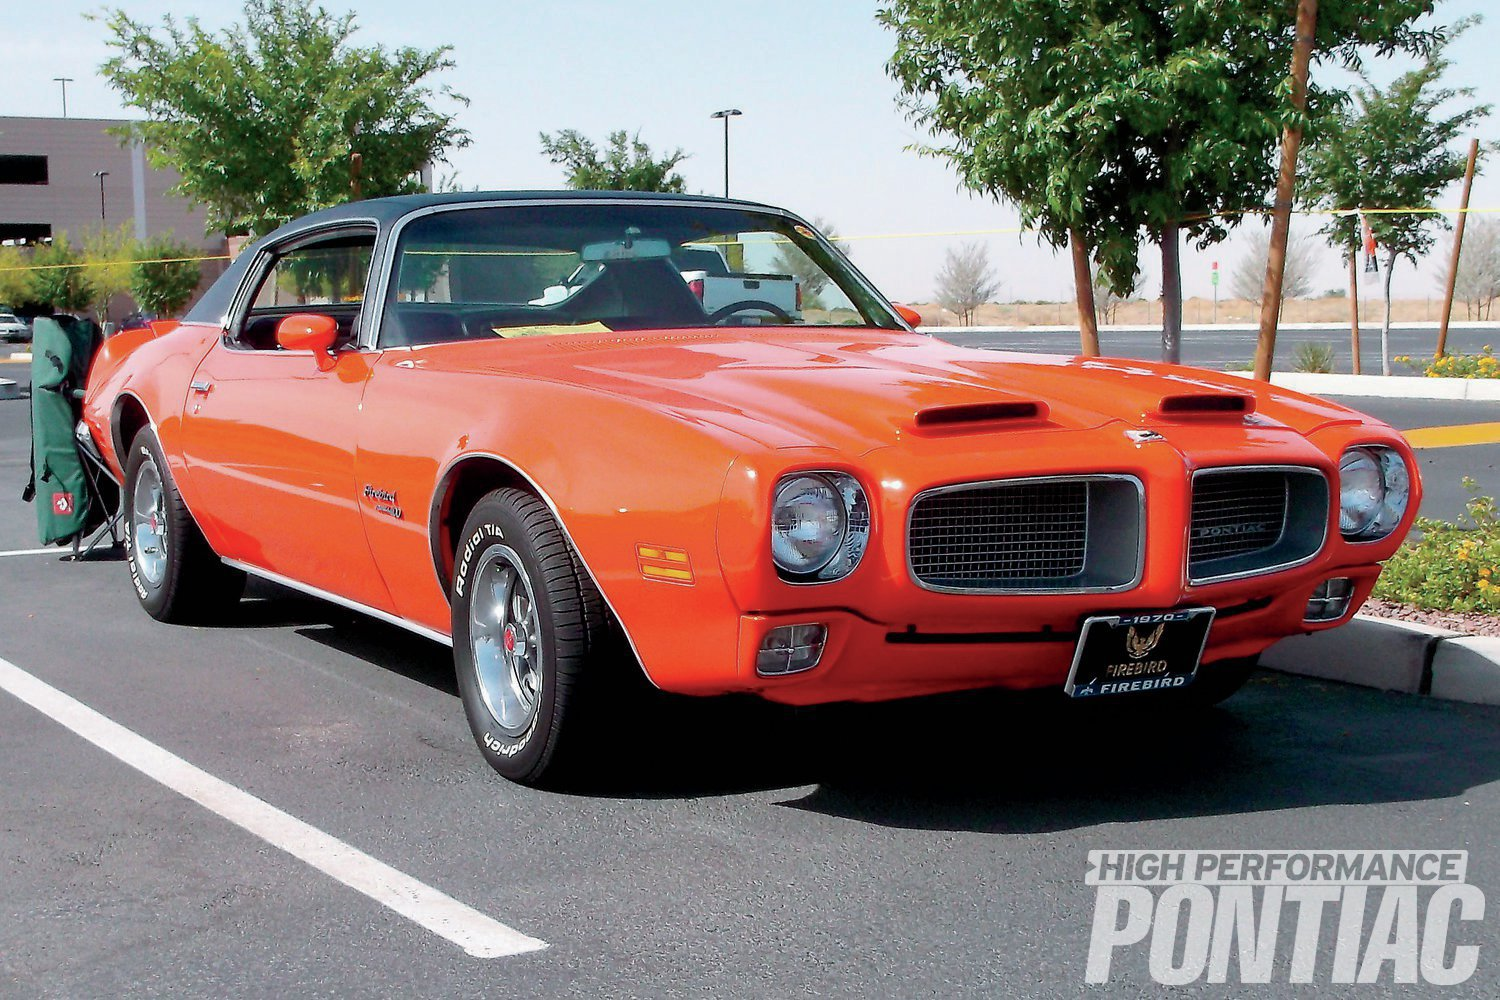 Although there were many, many more fine Pontiacs at the event, there's only enough space left for one more shout out, and this one goes to the original-owner '70 Formula 400, bought new by Dave Peterson, which won Best Firebird '70-'74.